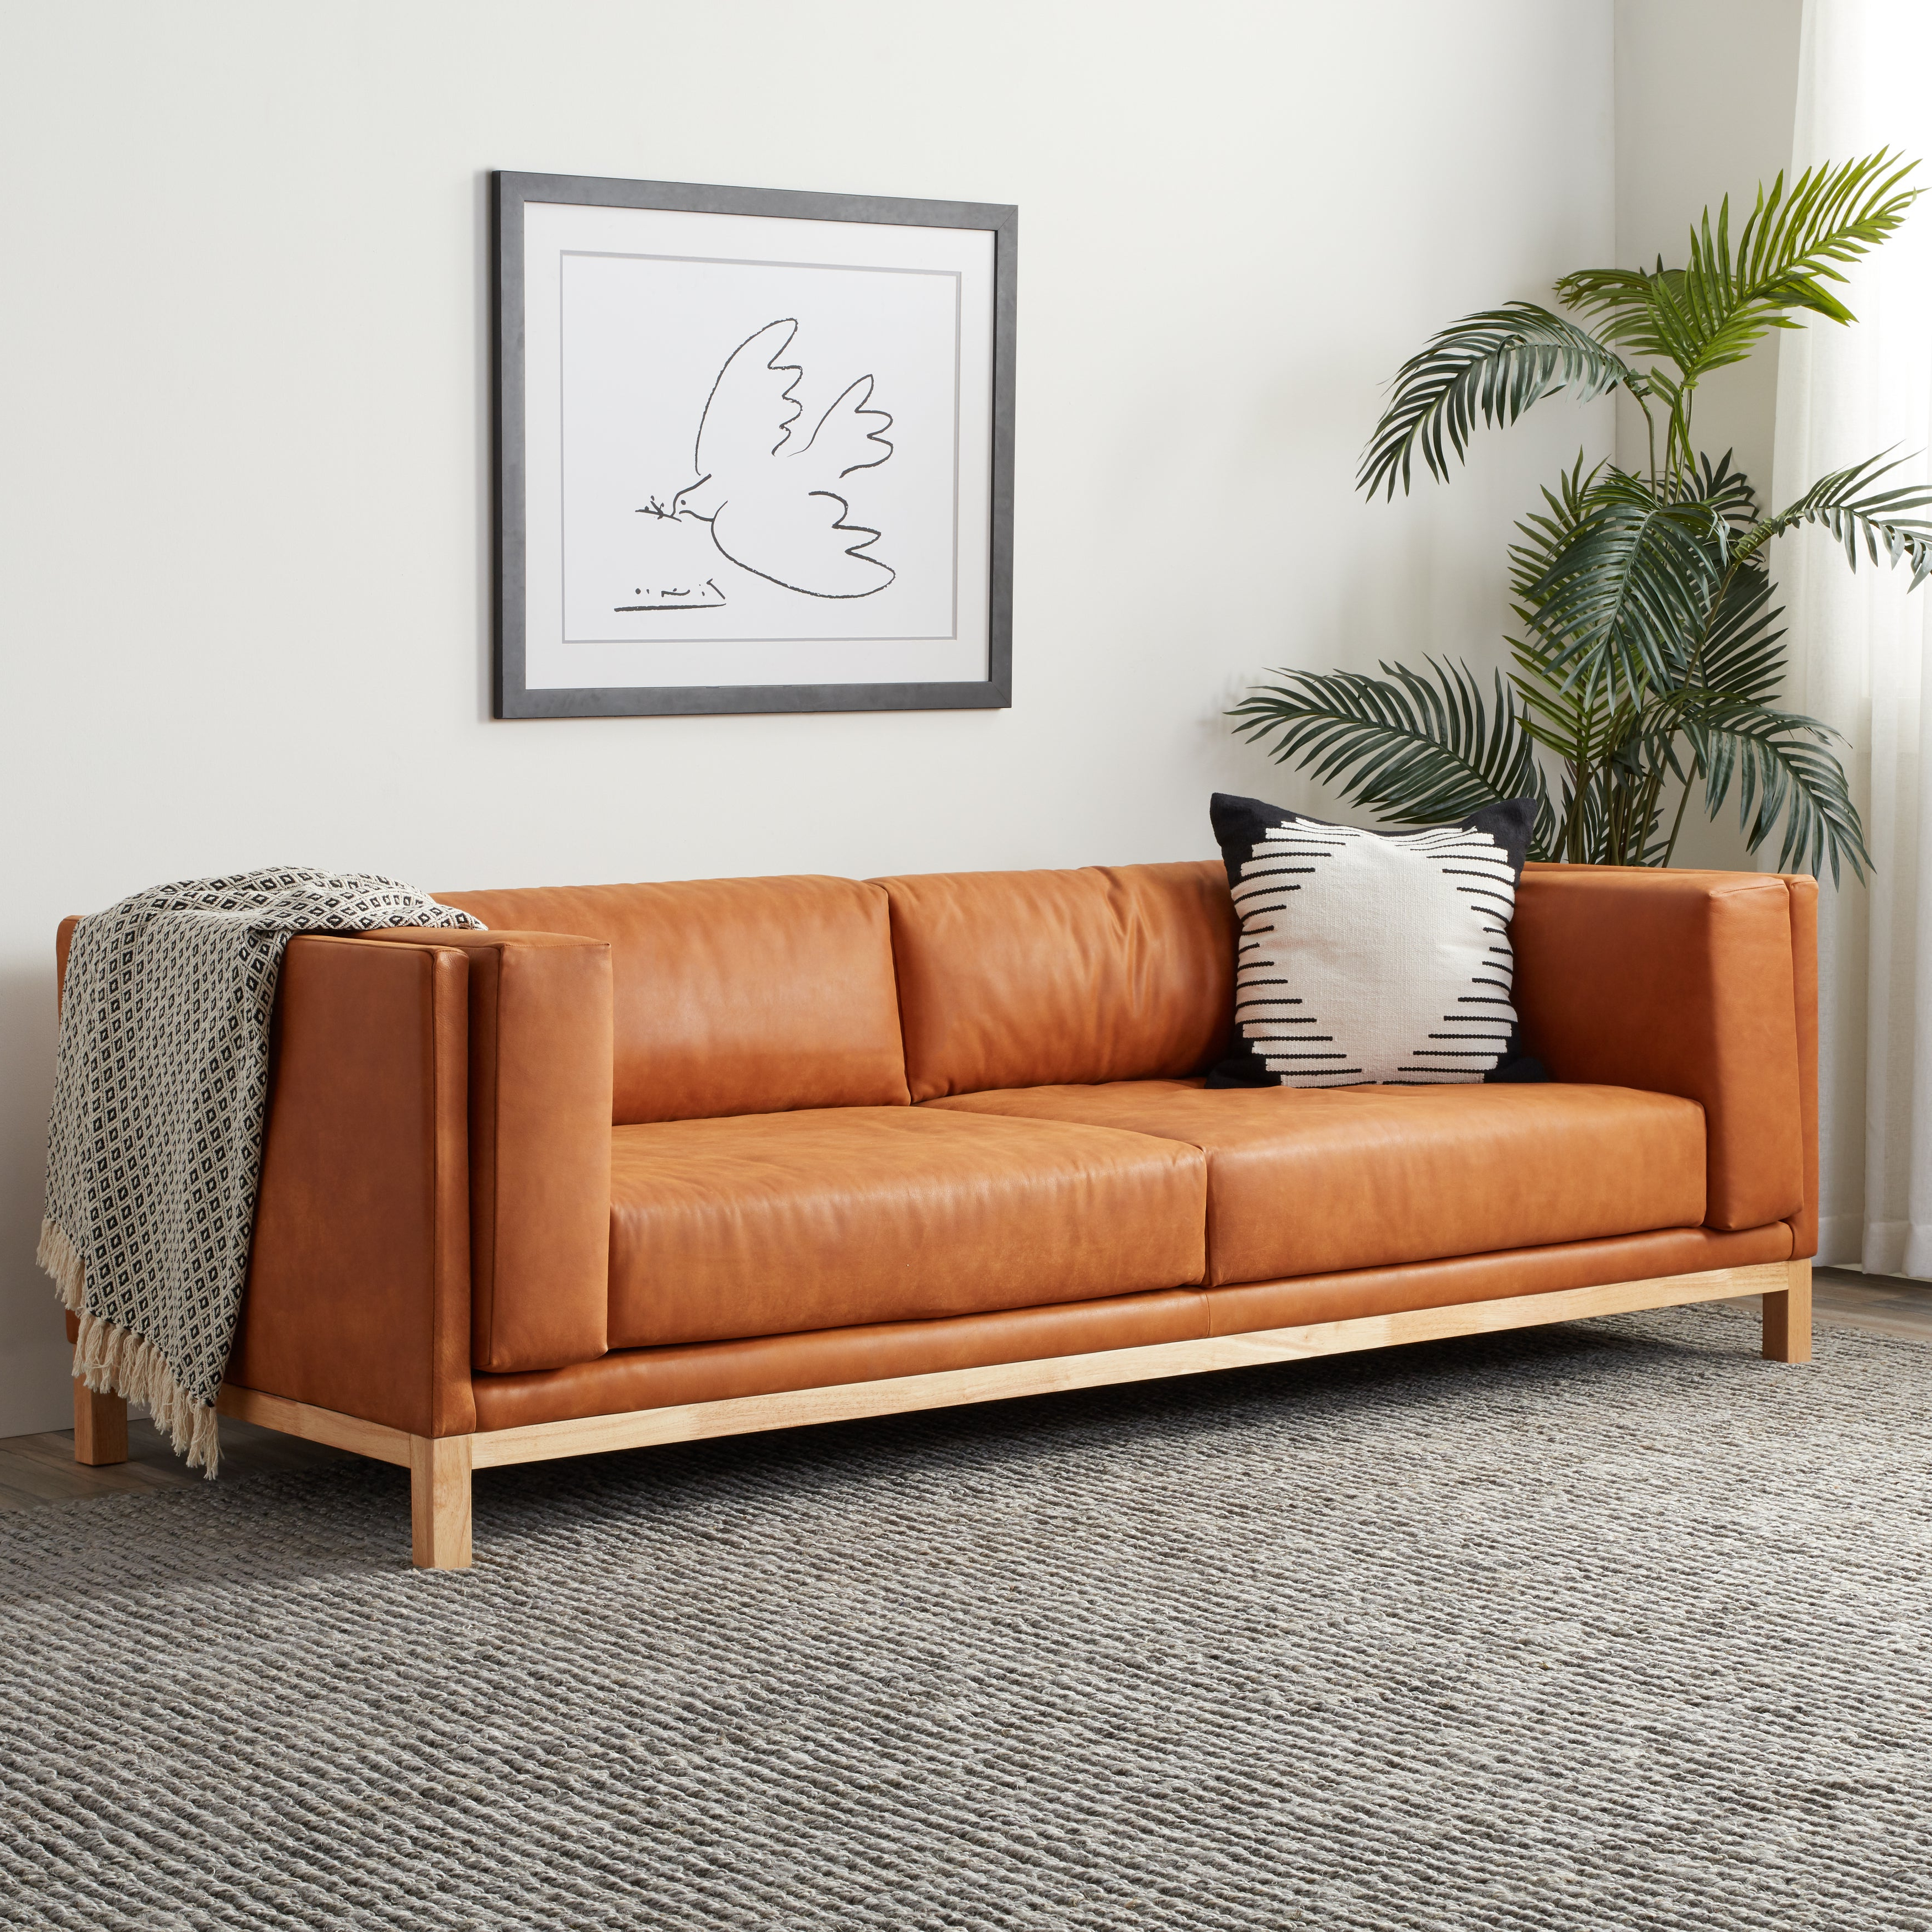 Most Recently Released Strick & Bolton Ellison Two Sofa In Mid Century Tan Within Ellison Patio Sectionals With Cushions (View 15 of 20)